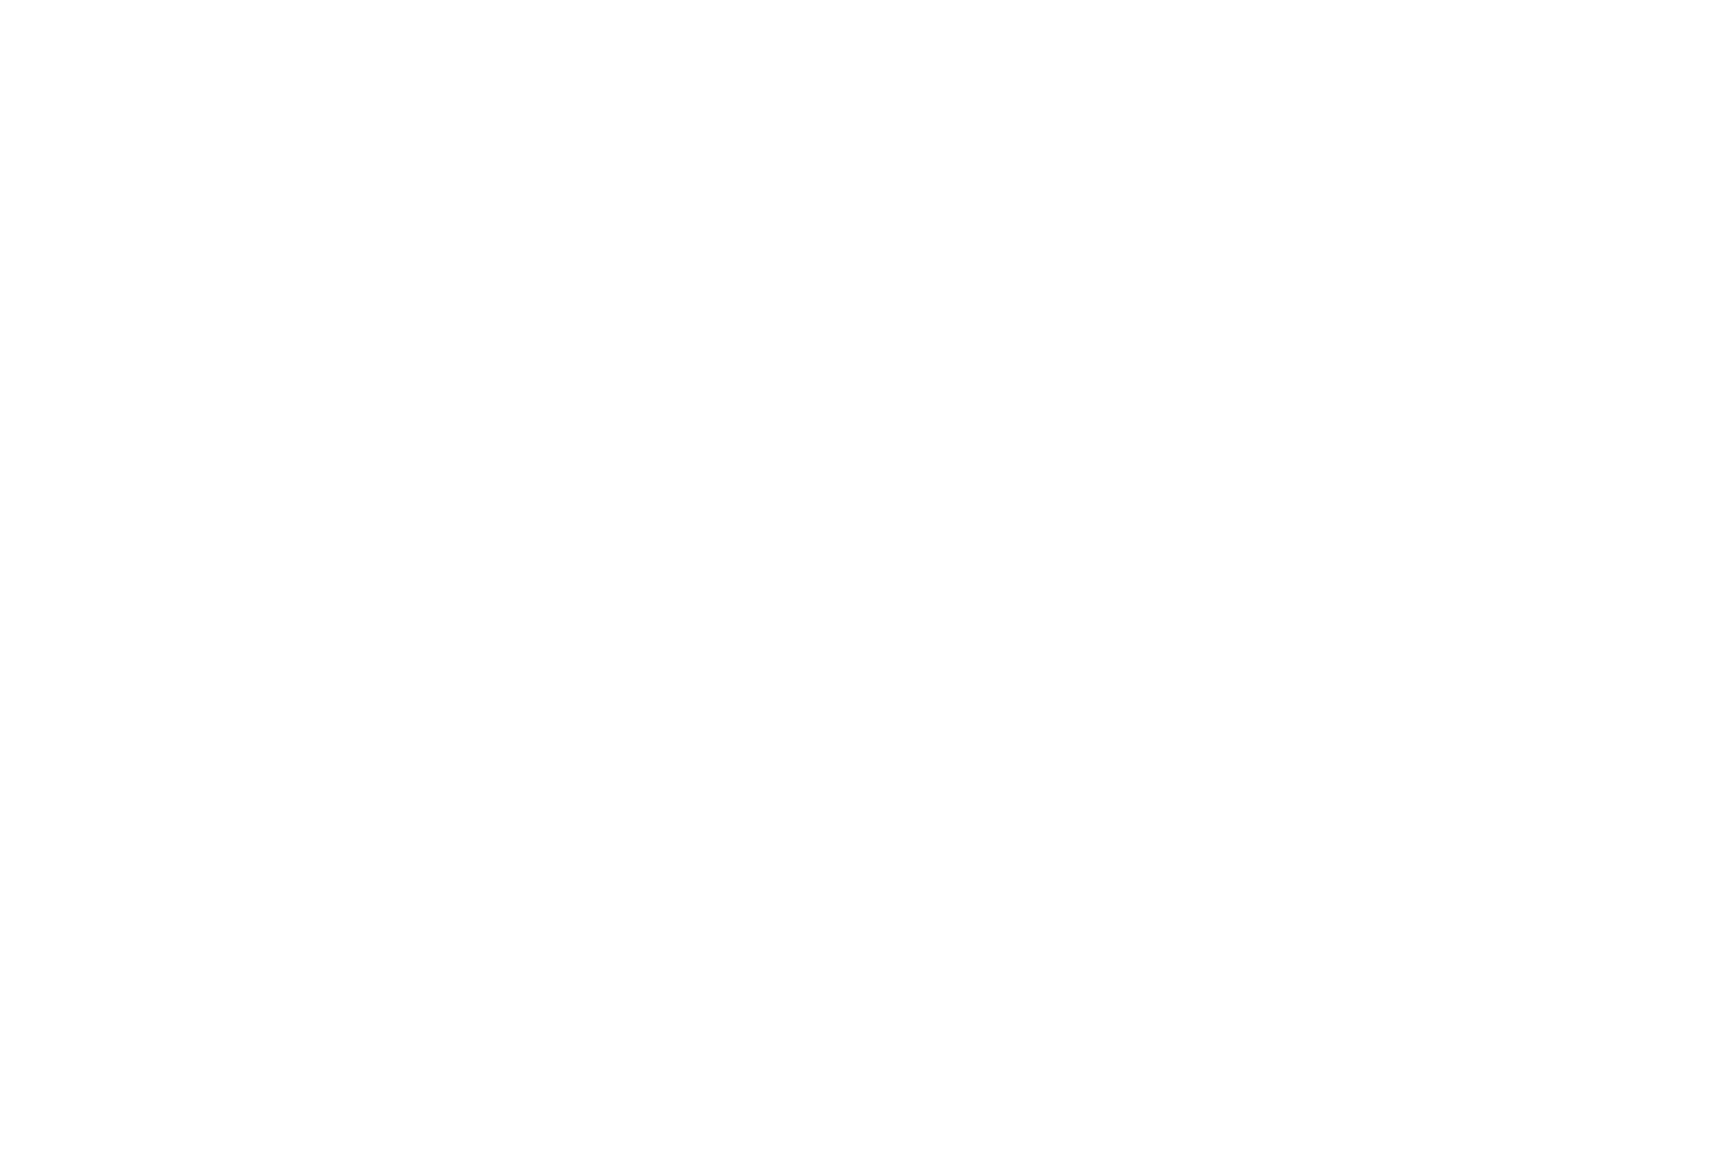 OFFICIAL SELECTION - Berlin Sci-Fi Filmfest - 2018.png